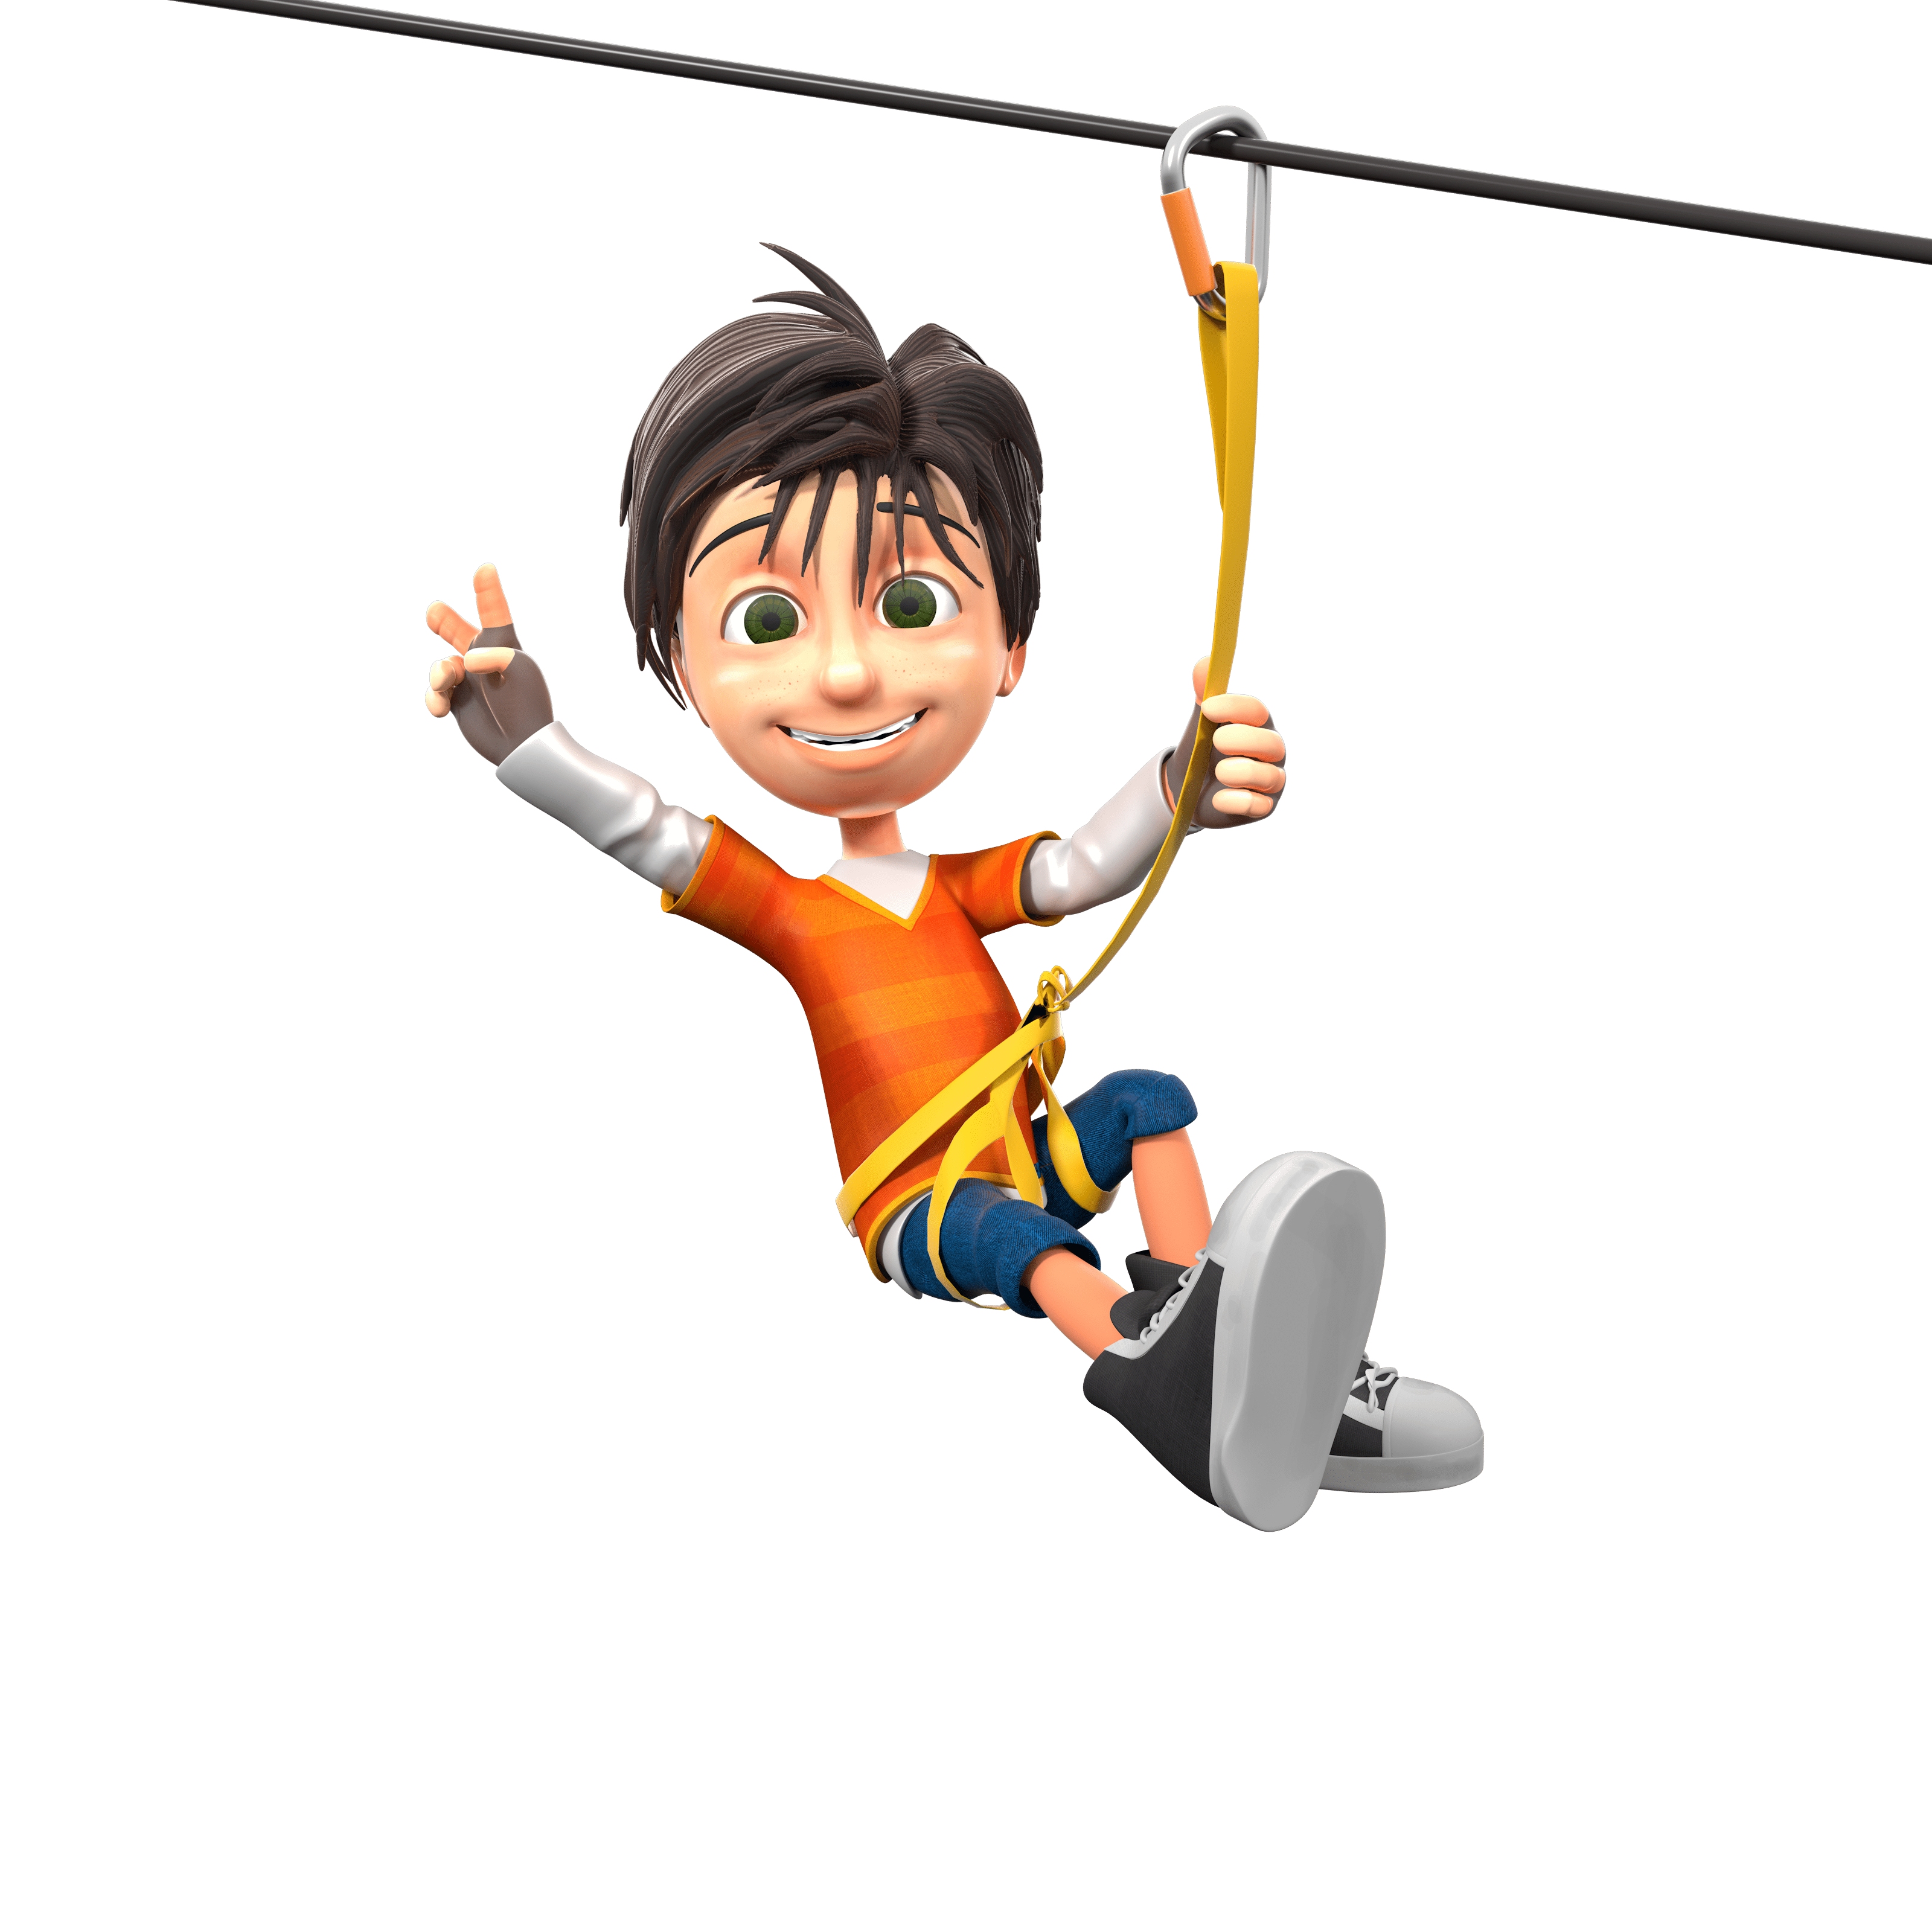 le grand defi accrobranche le grand defi jump rope clip art black and white girl jump rope clipart